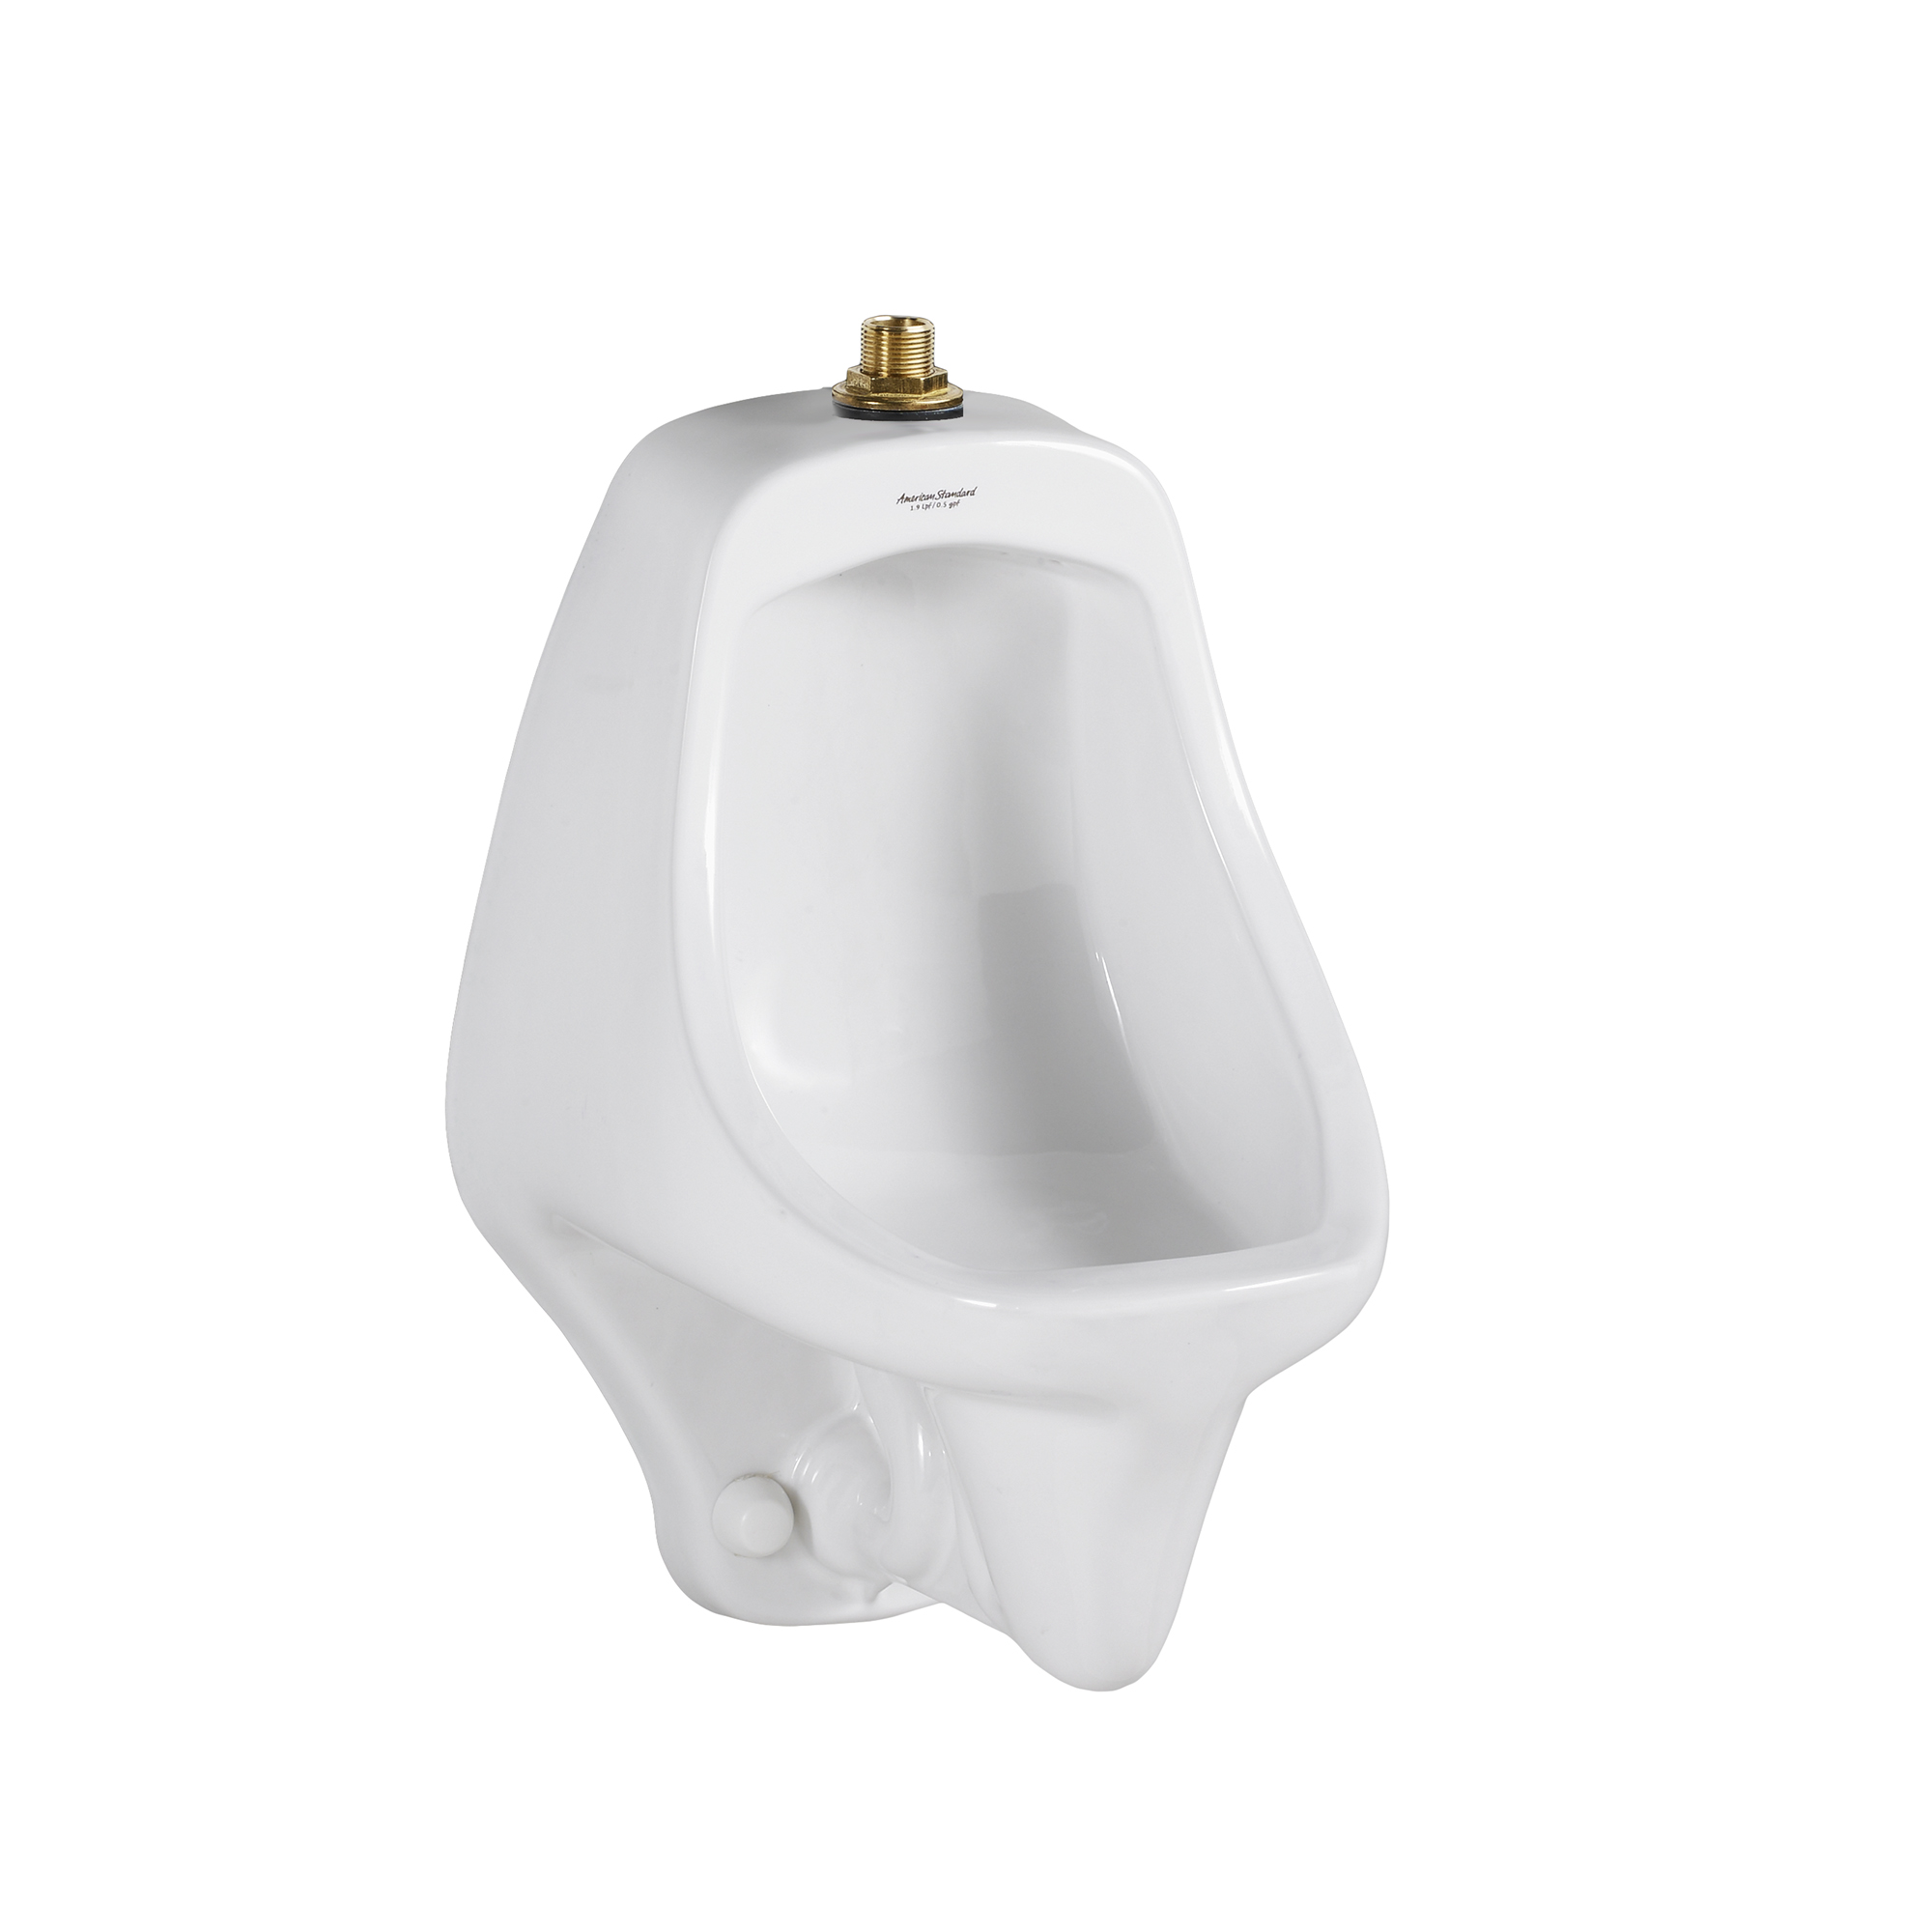 American Standard 6550001.020 Allbrook® FloWise® Universal Urinal, 0.5/1 gpf, Top Spud, Wall Mount, White, Import